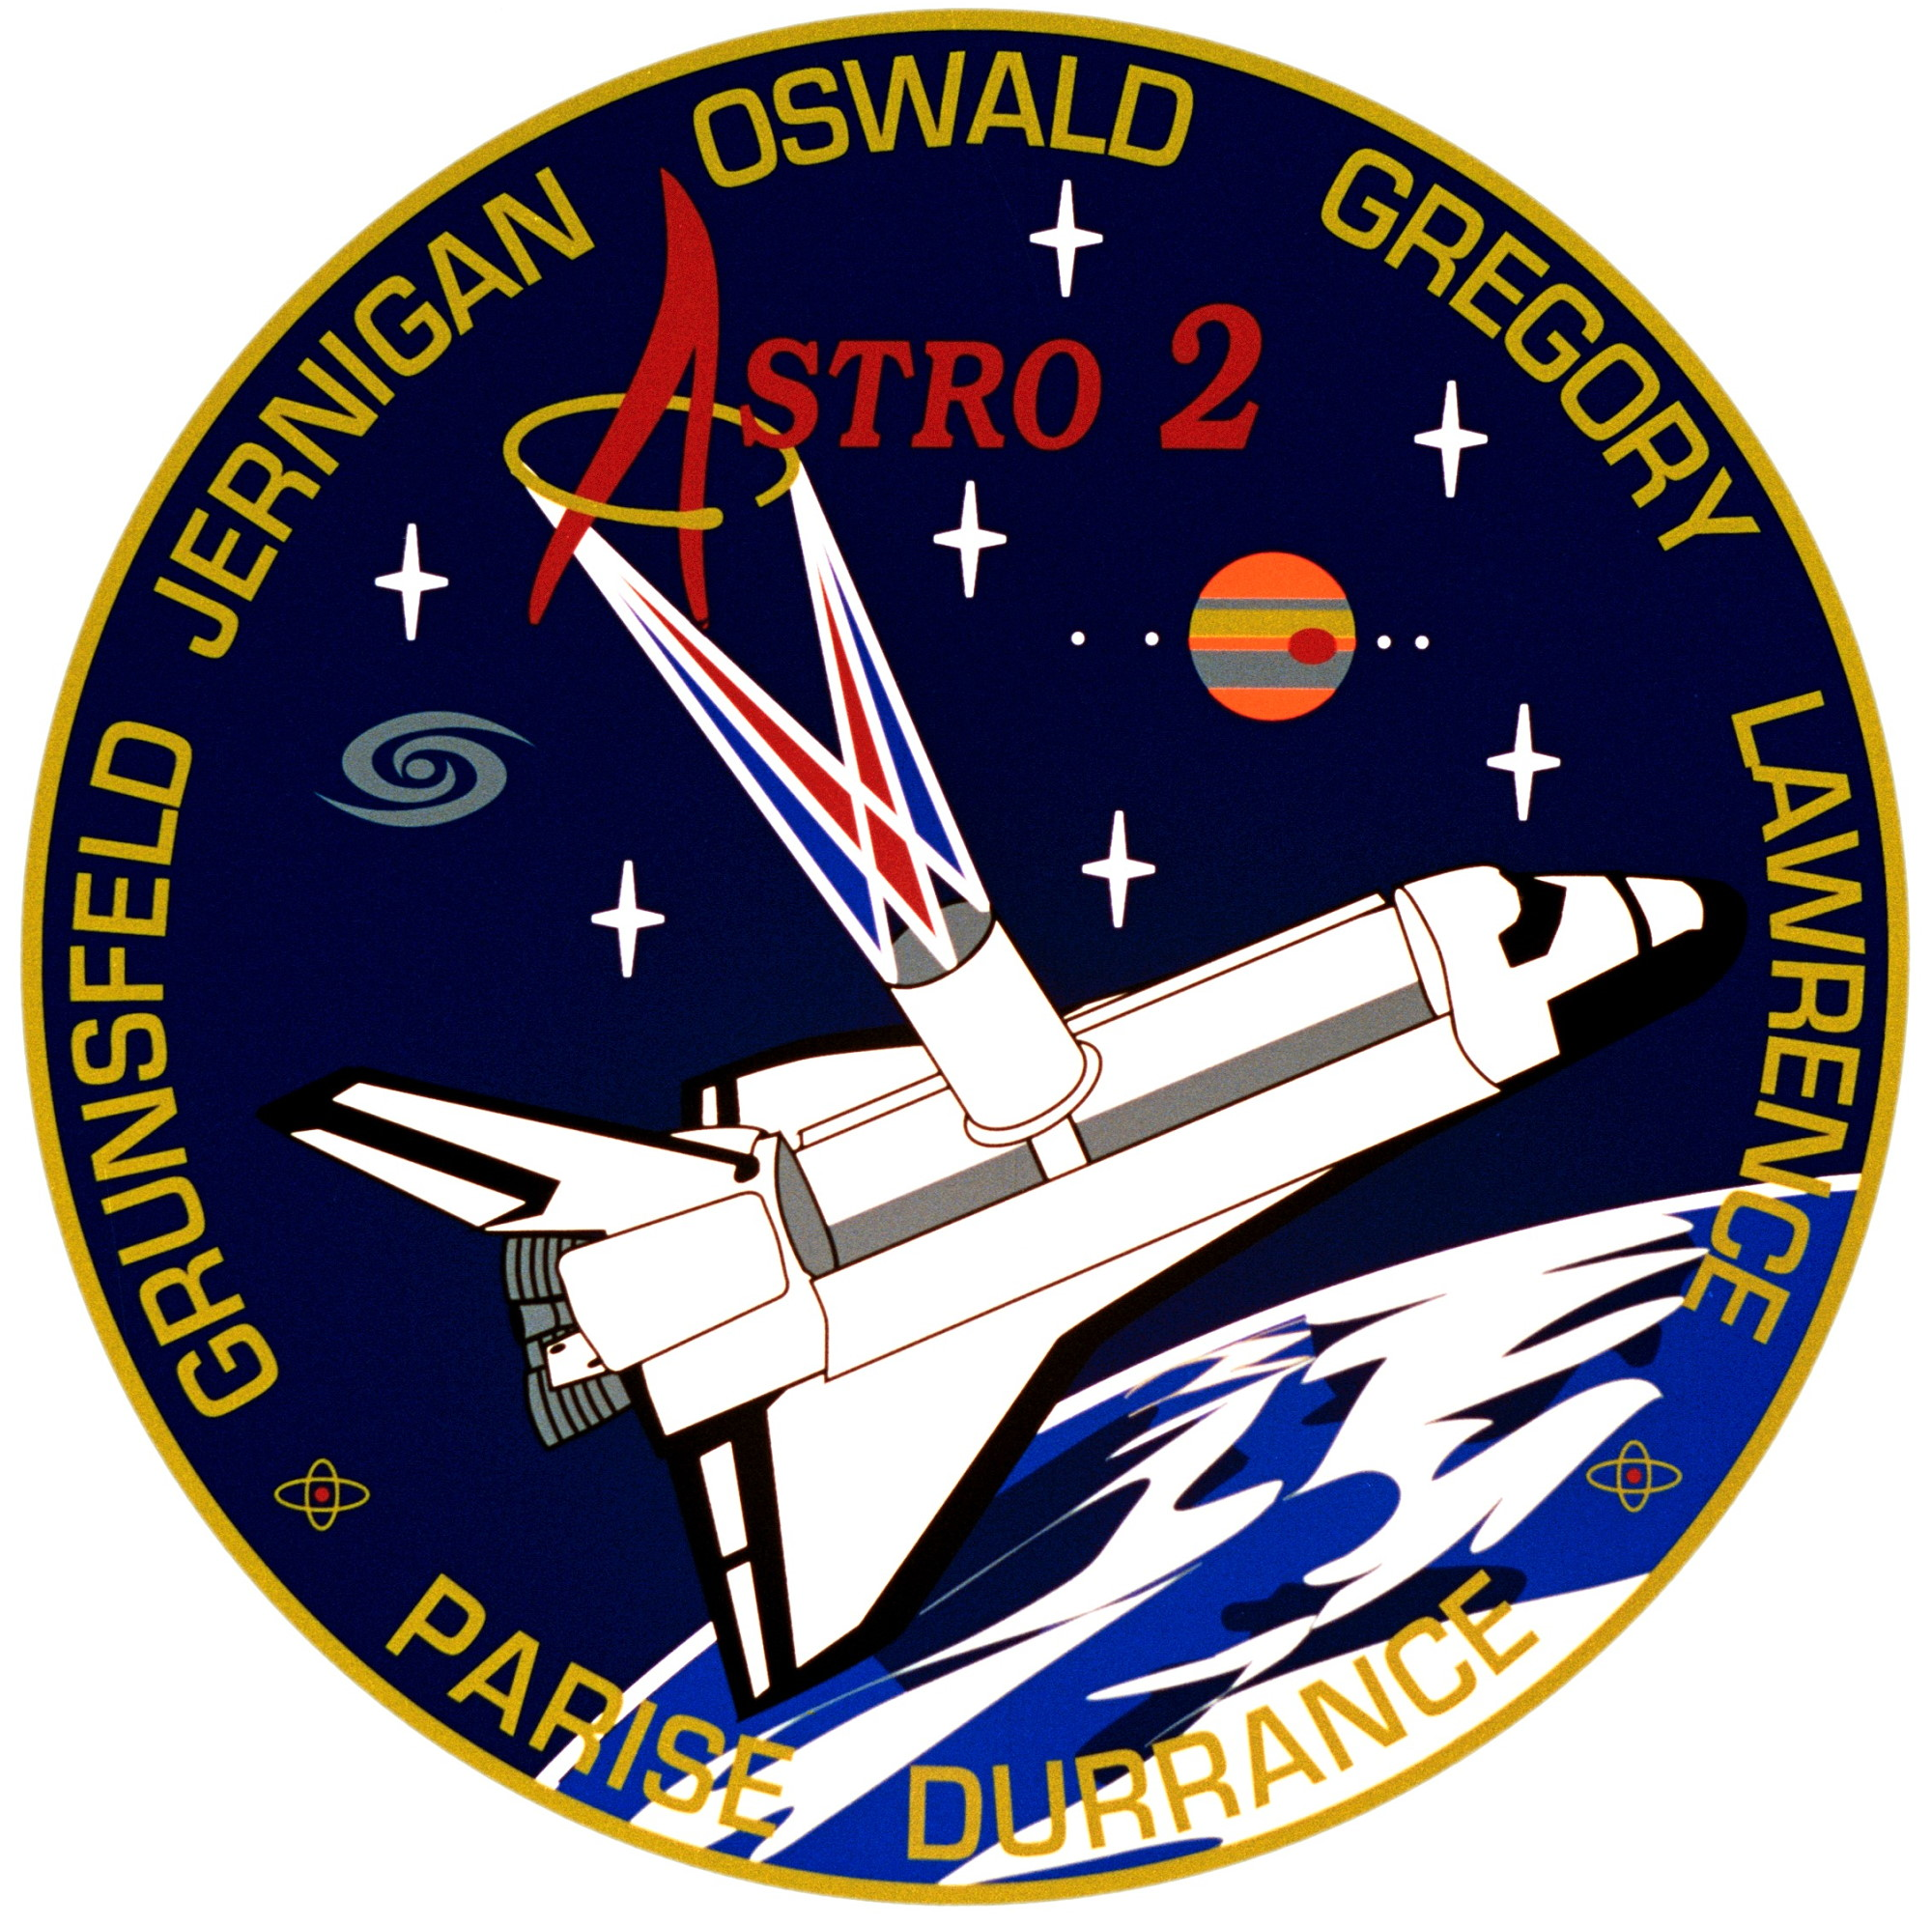 Mission Patches On Mission 4 To The International Space: Spaceflight Mission Report: STS-67